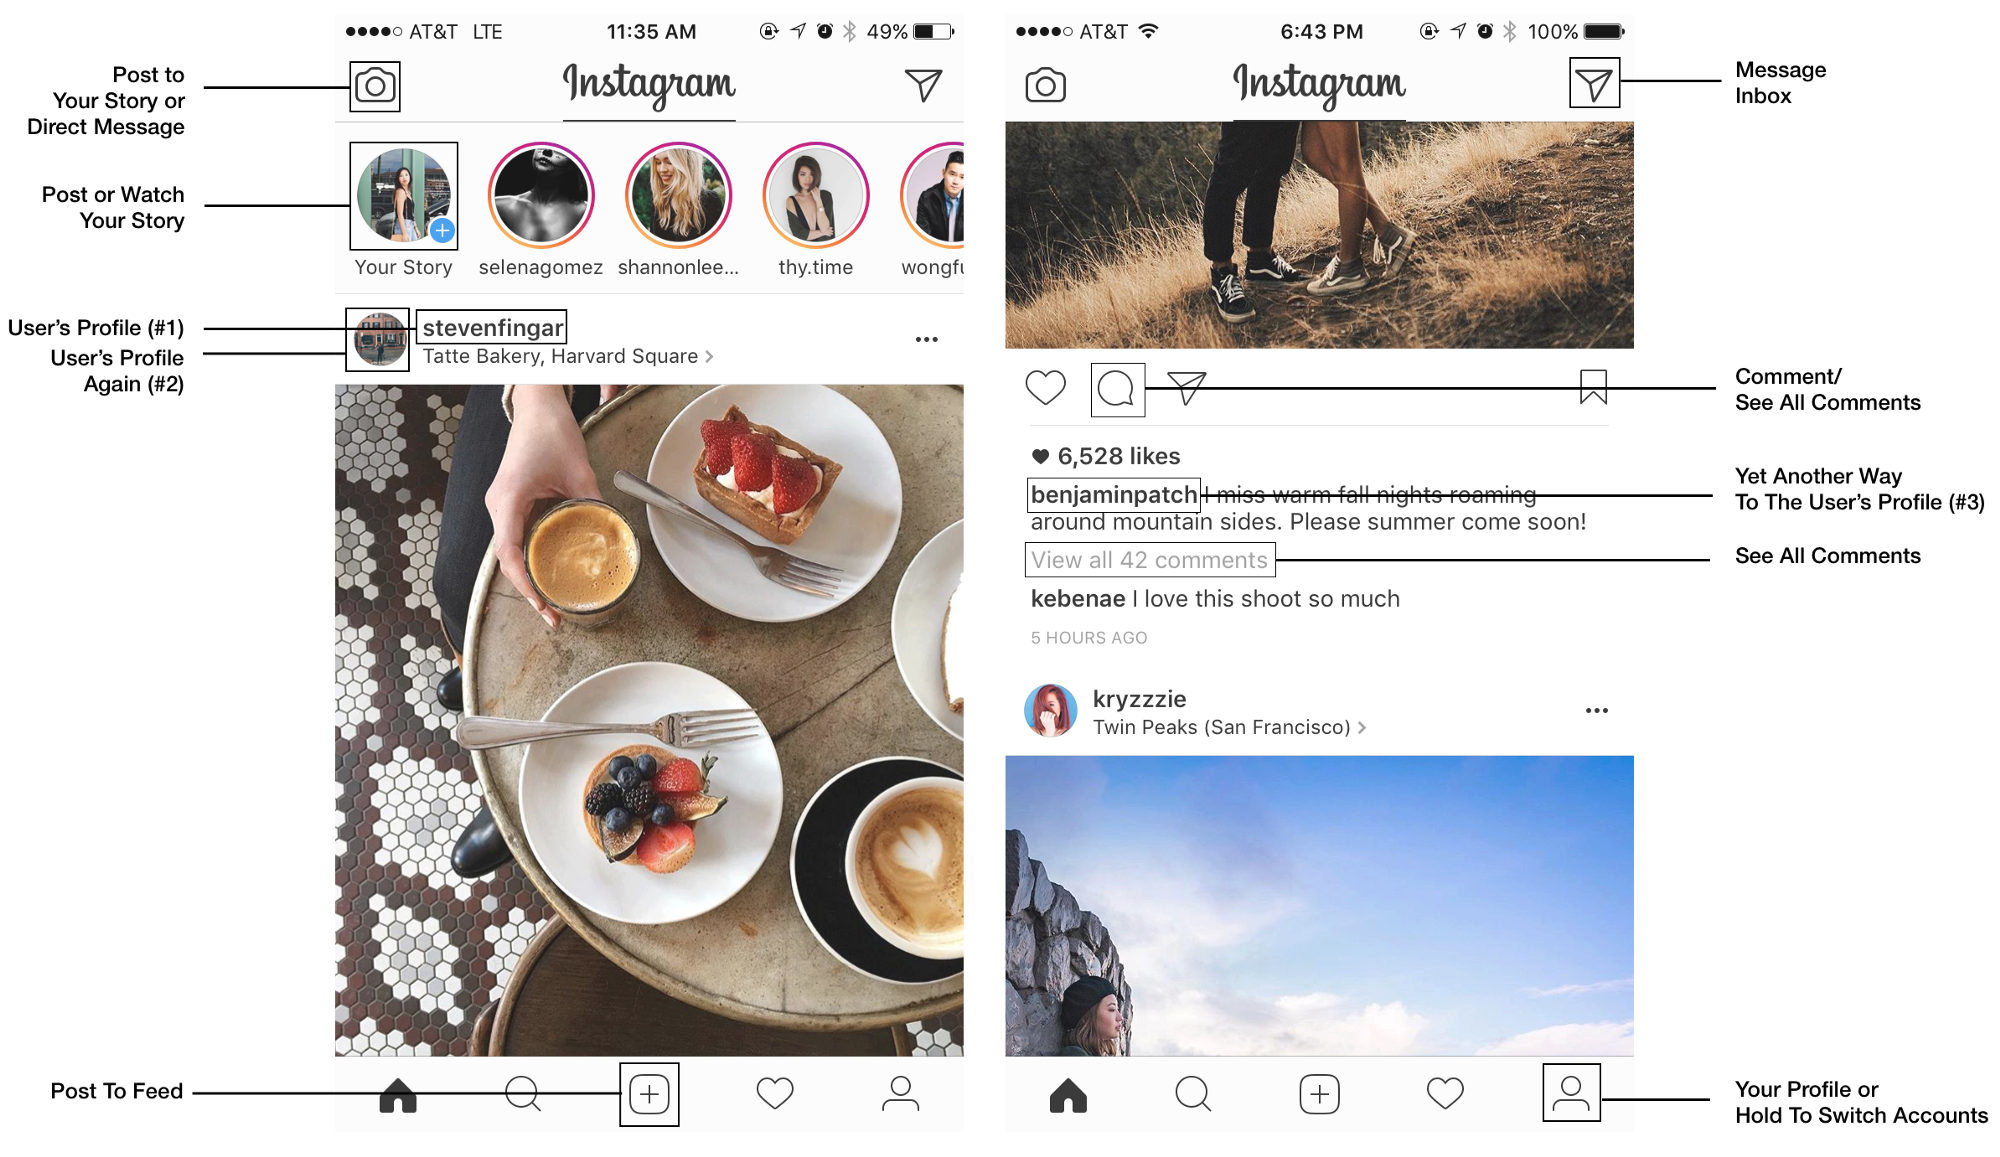 I wanted to see how far I could push myself creatively. So I redesigned Instagram.